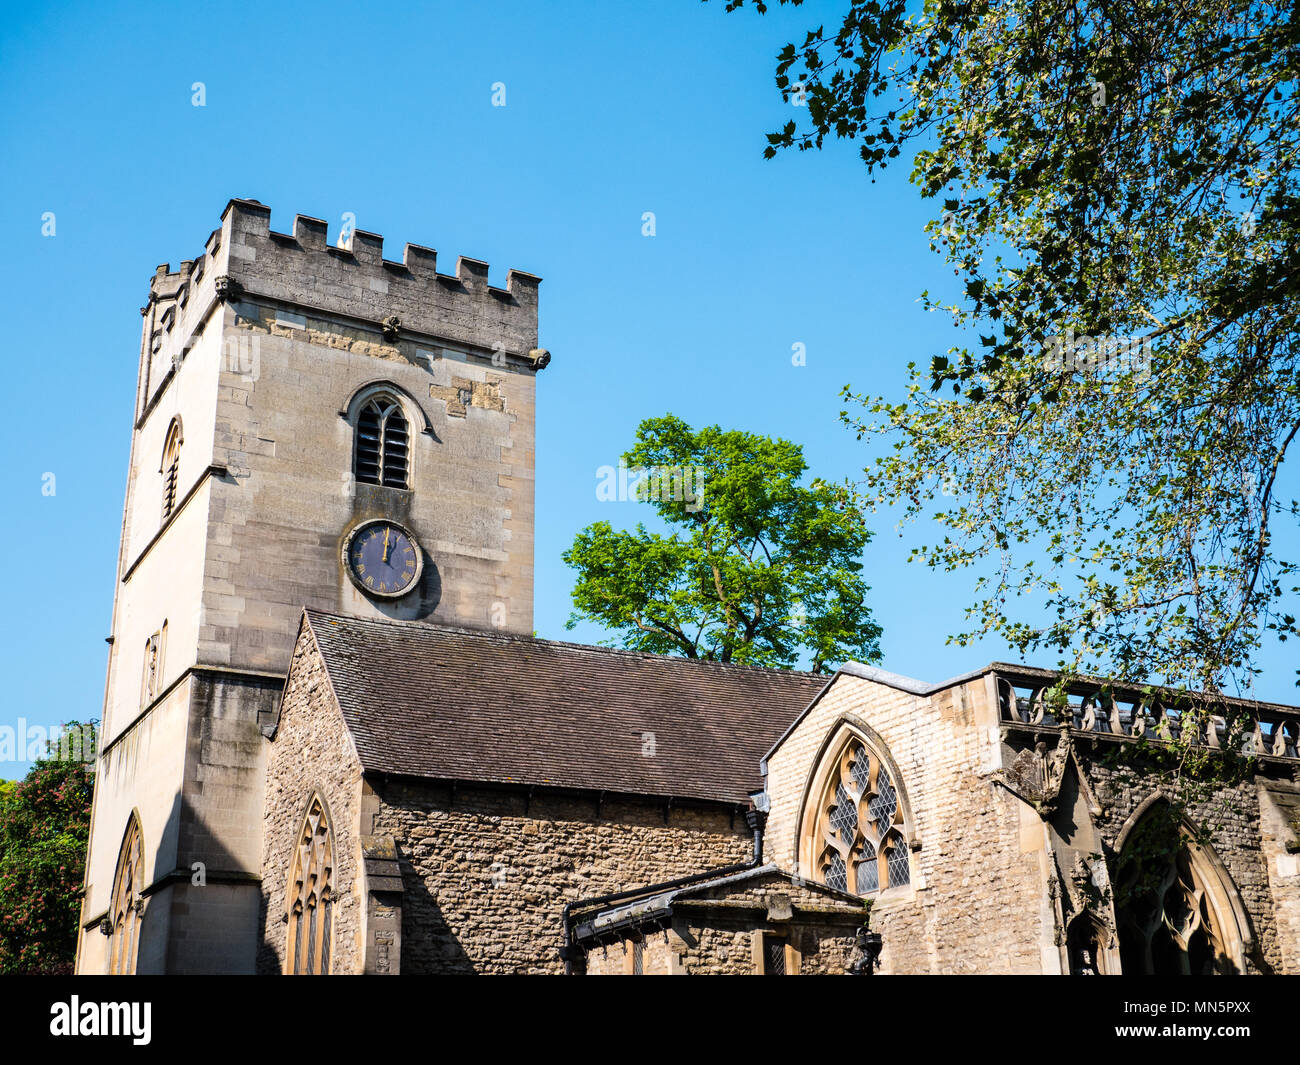 St Michael at the North Gate, Oxford, Oxfordshire, England, UK, GB. - Stock Image